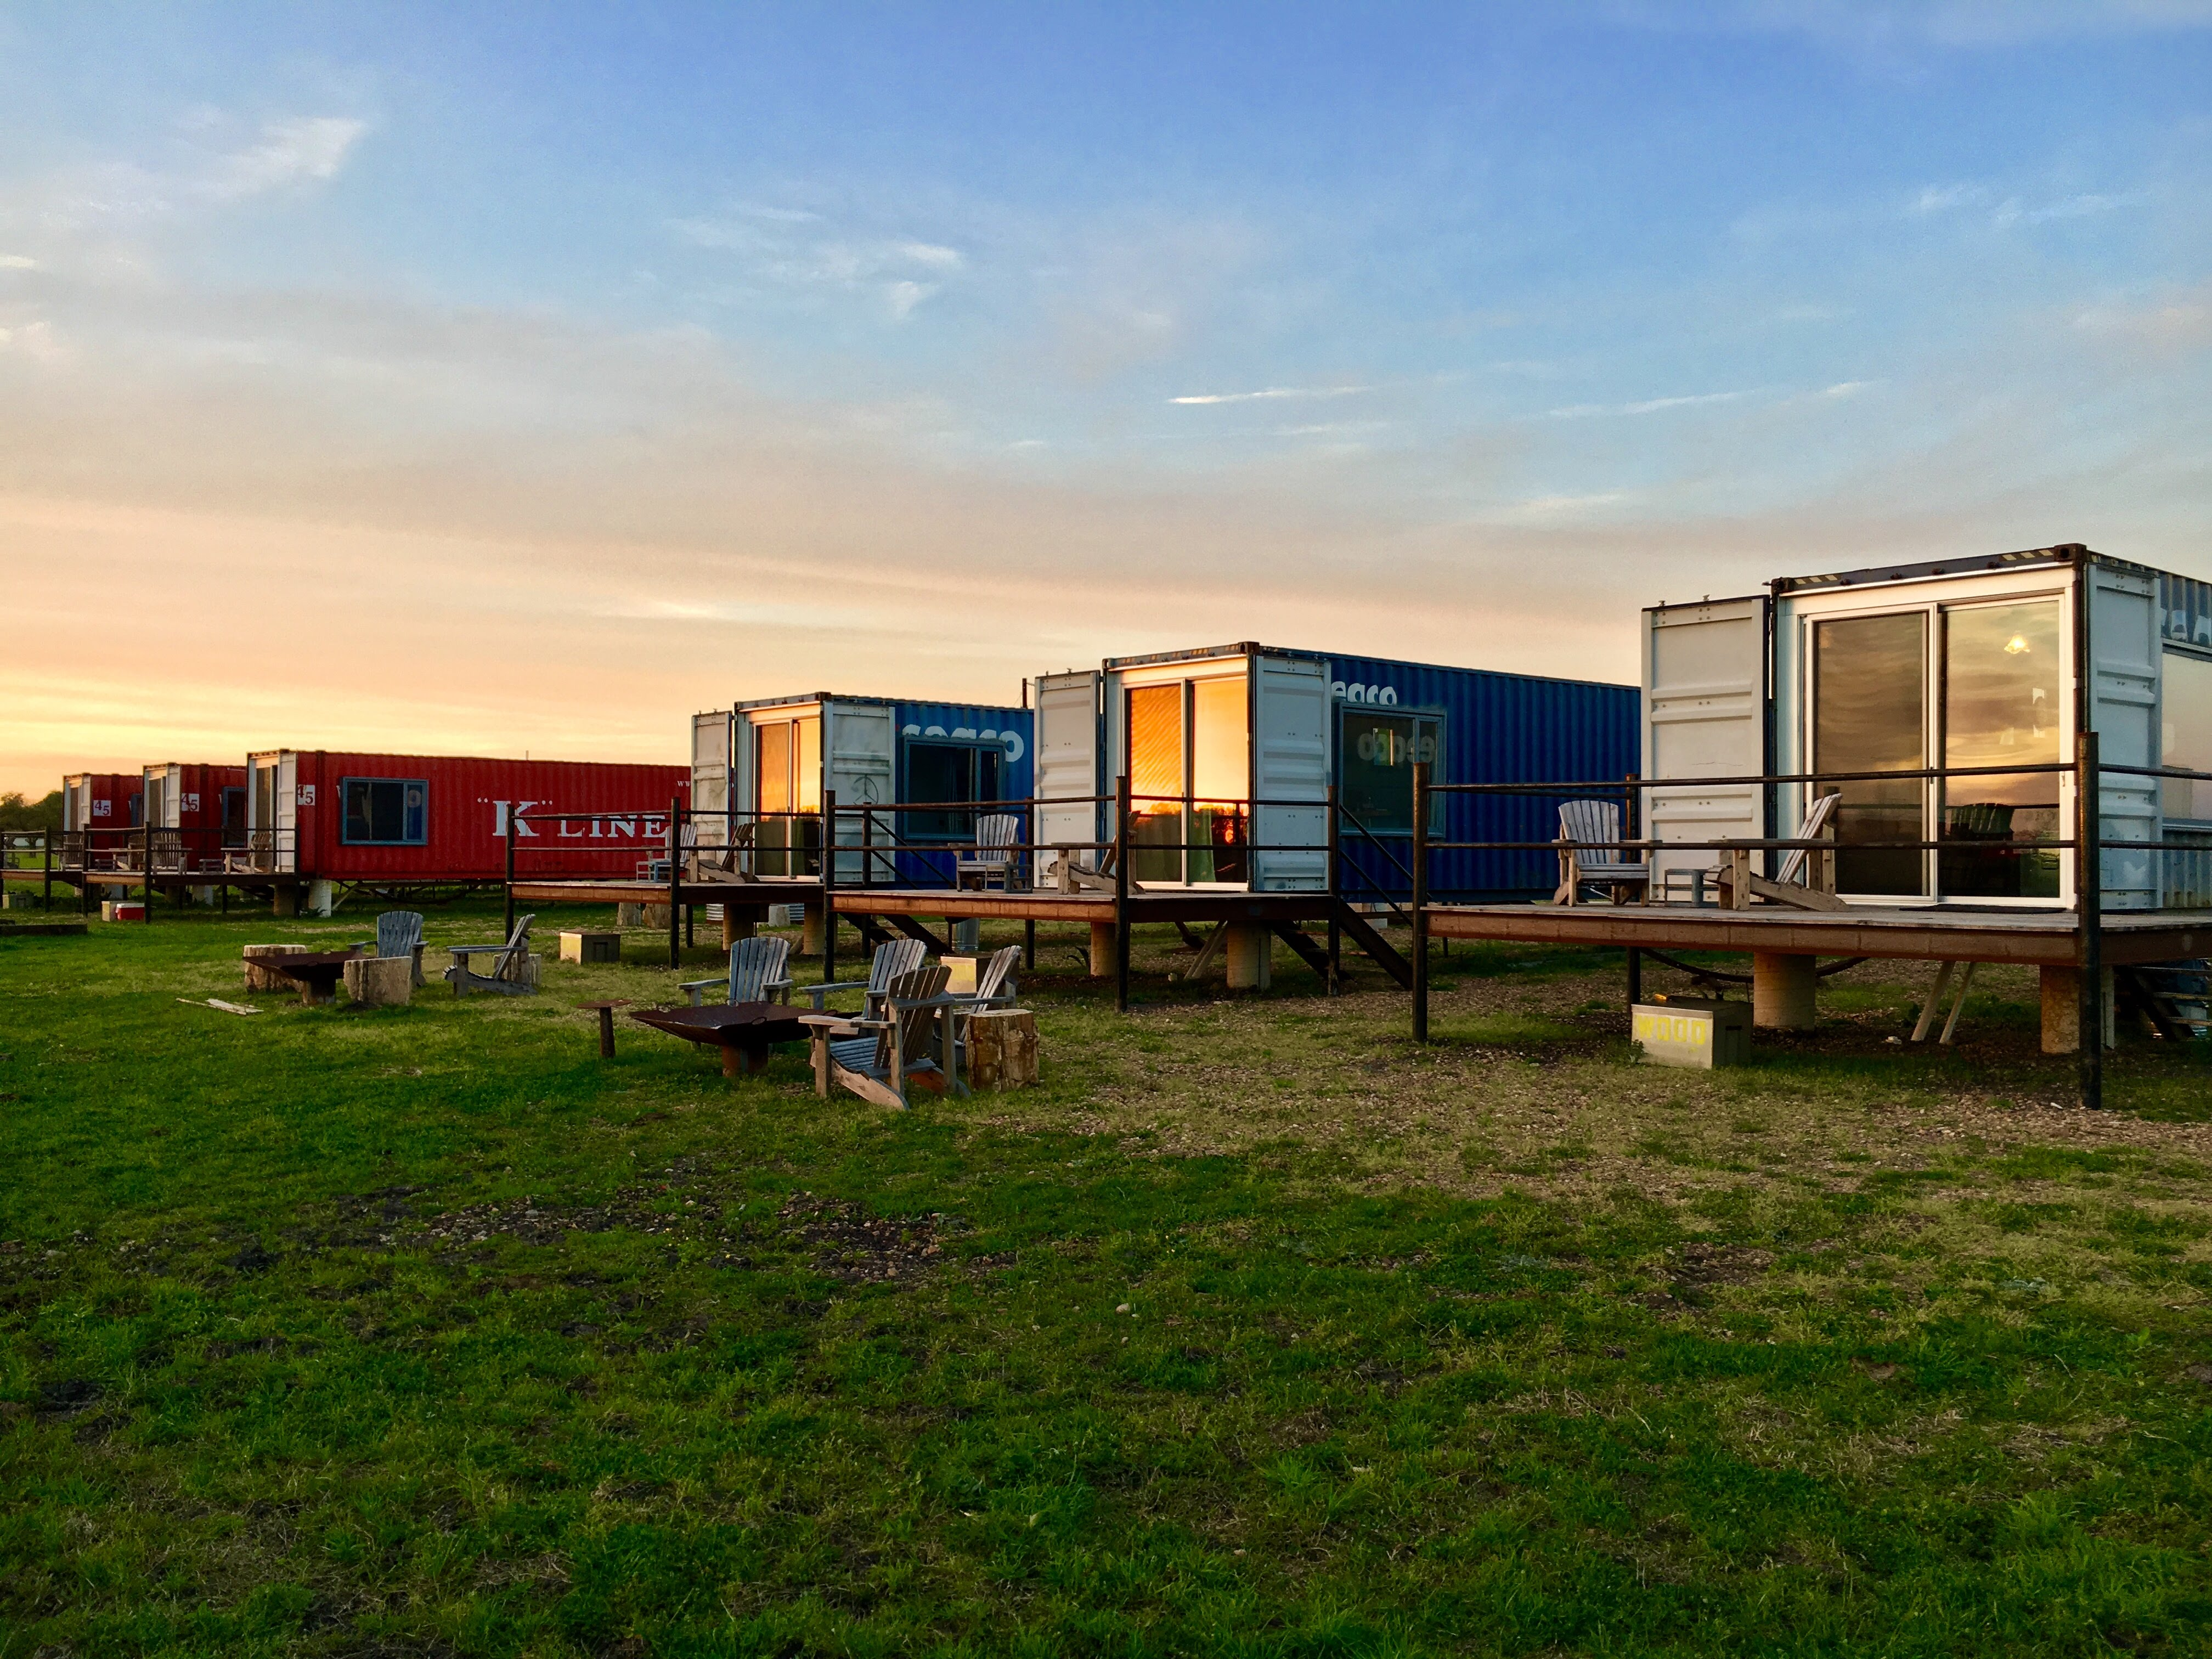 Shipping container hotel lets you try out tiny living